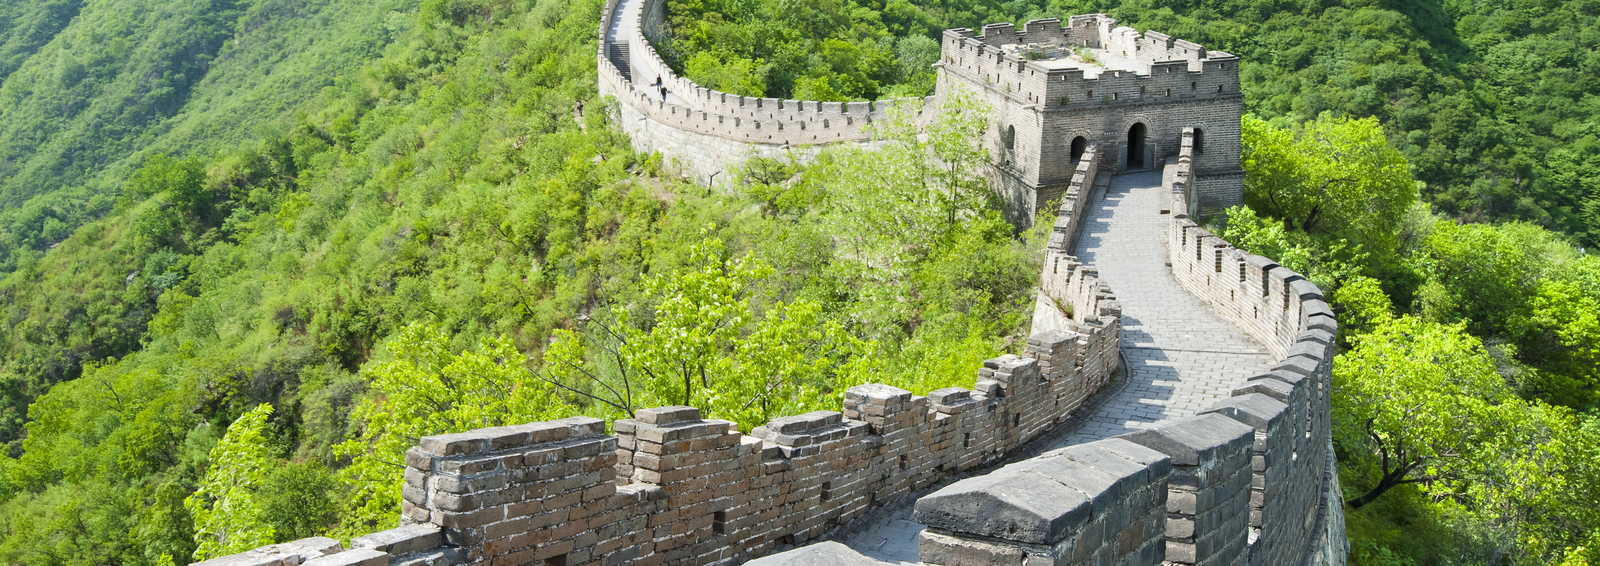 Great Wall of China in Summer, China